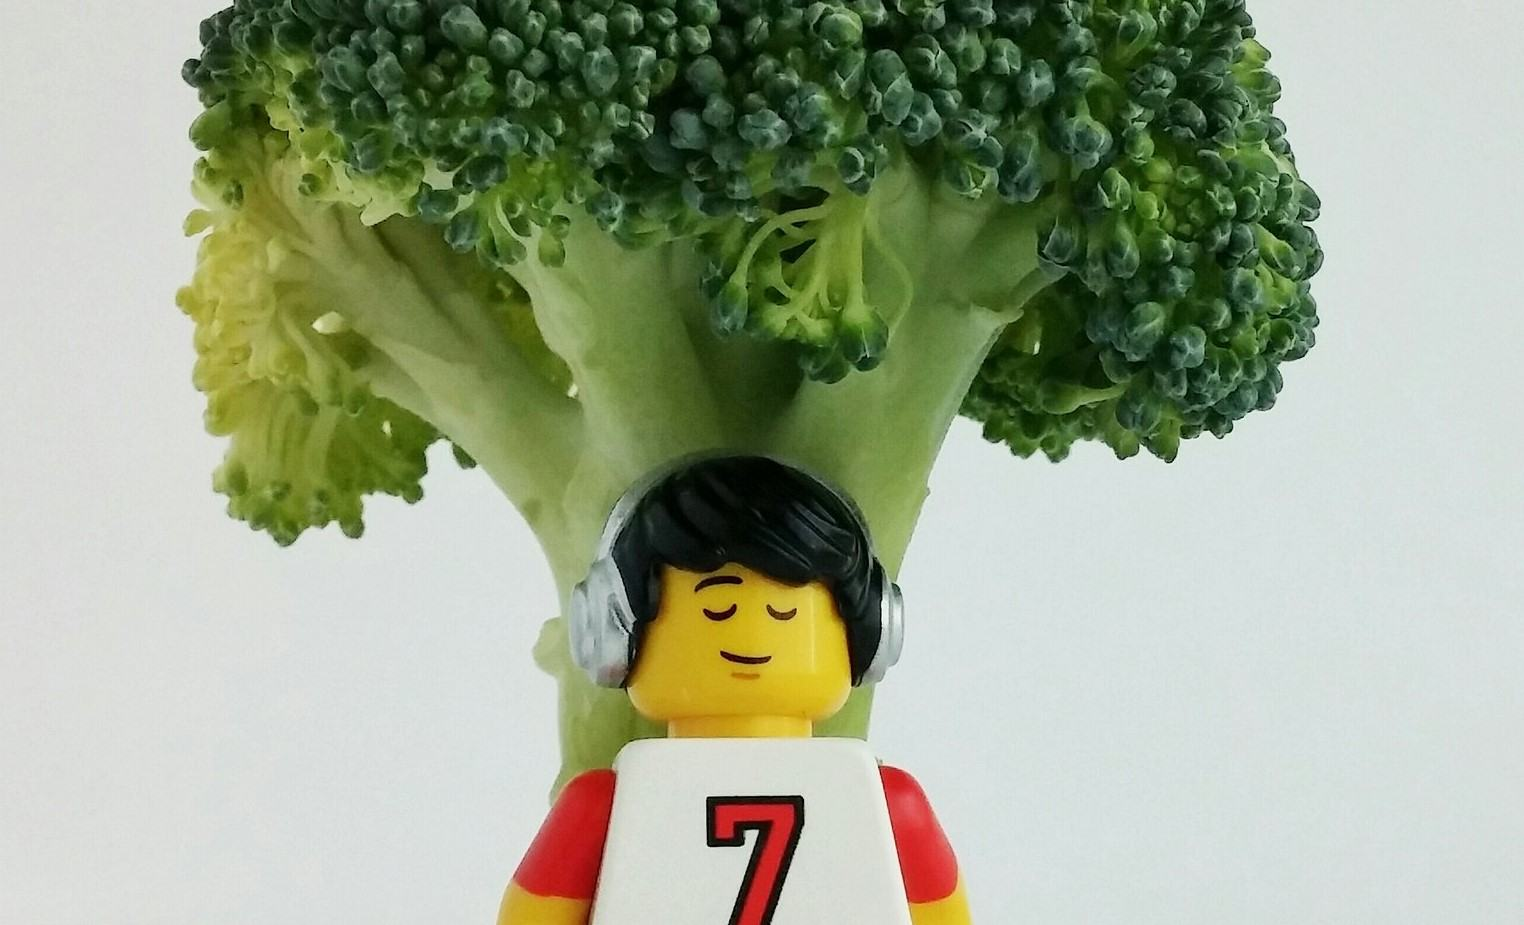 A LEGO one with his flexitarian diet.